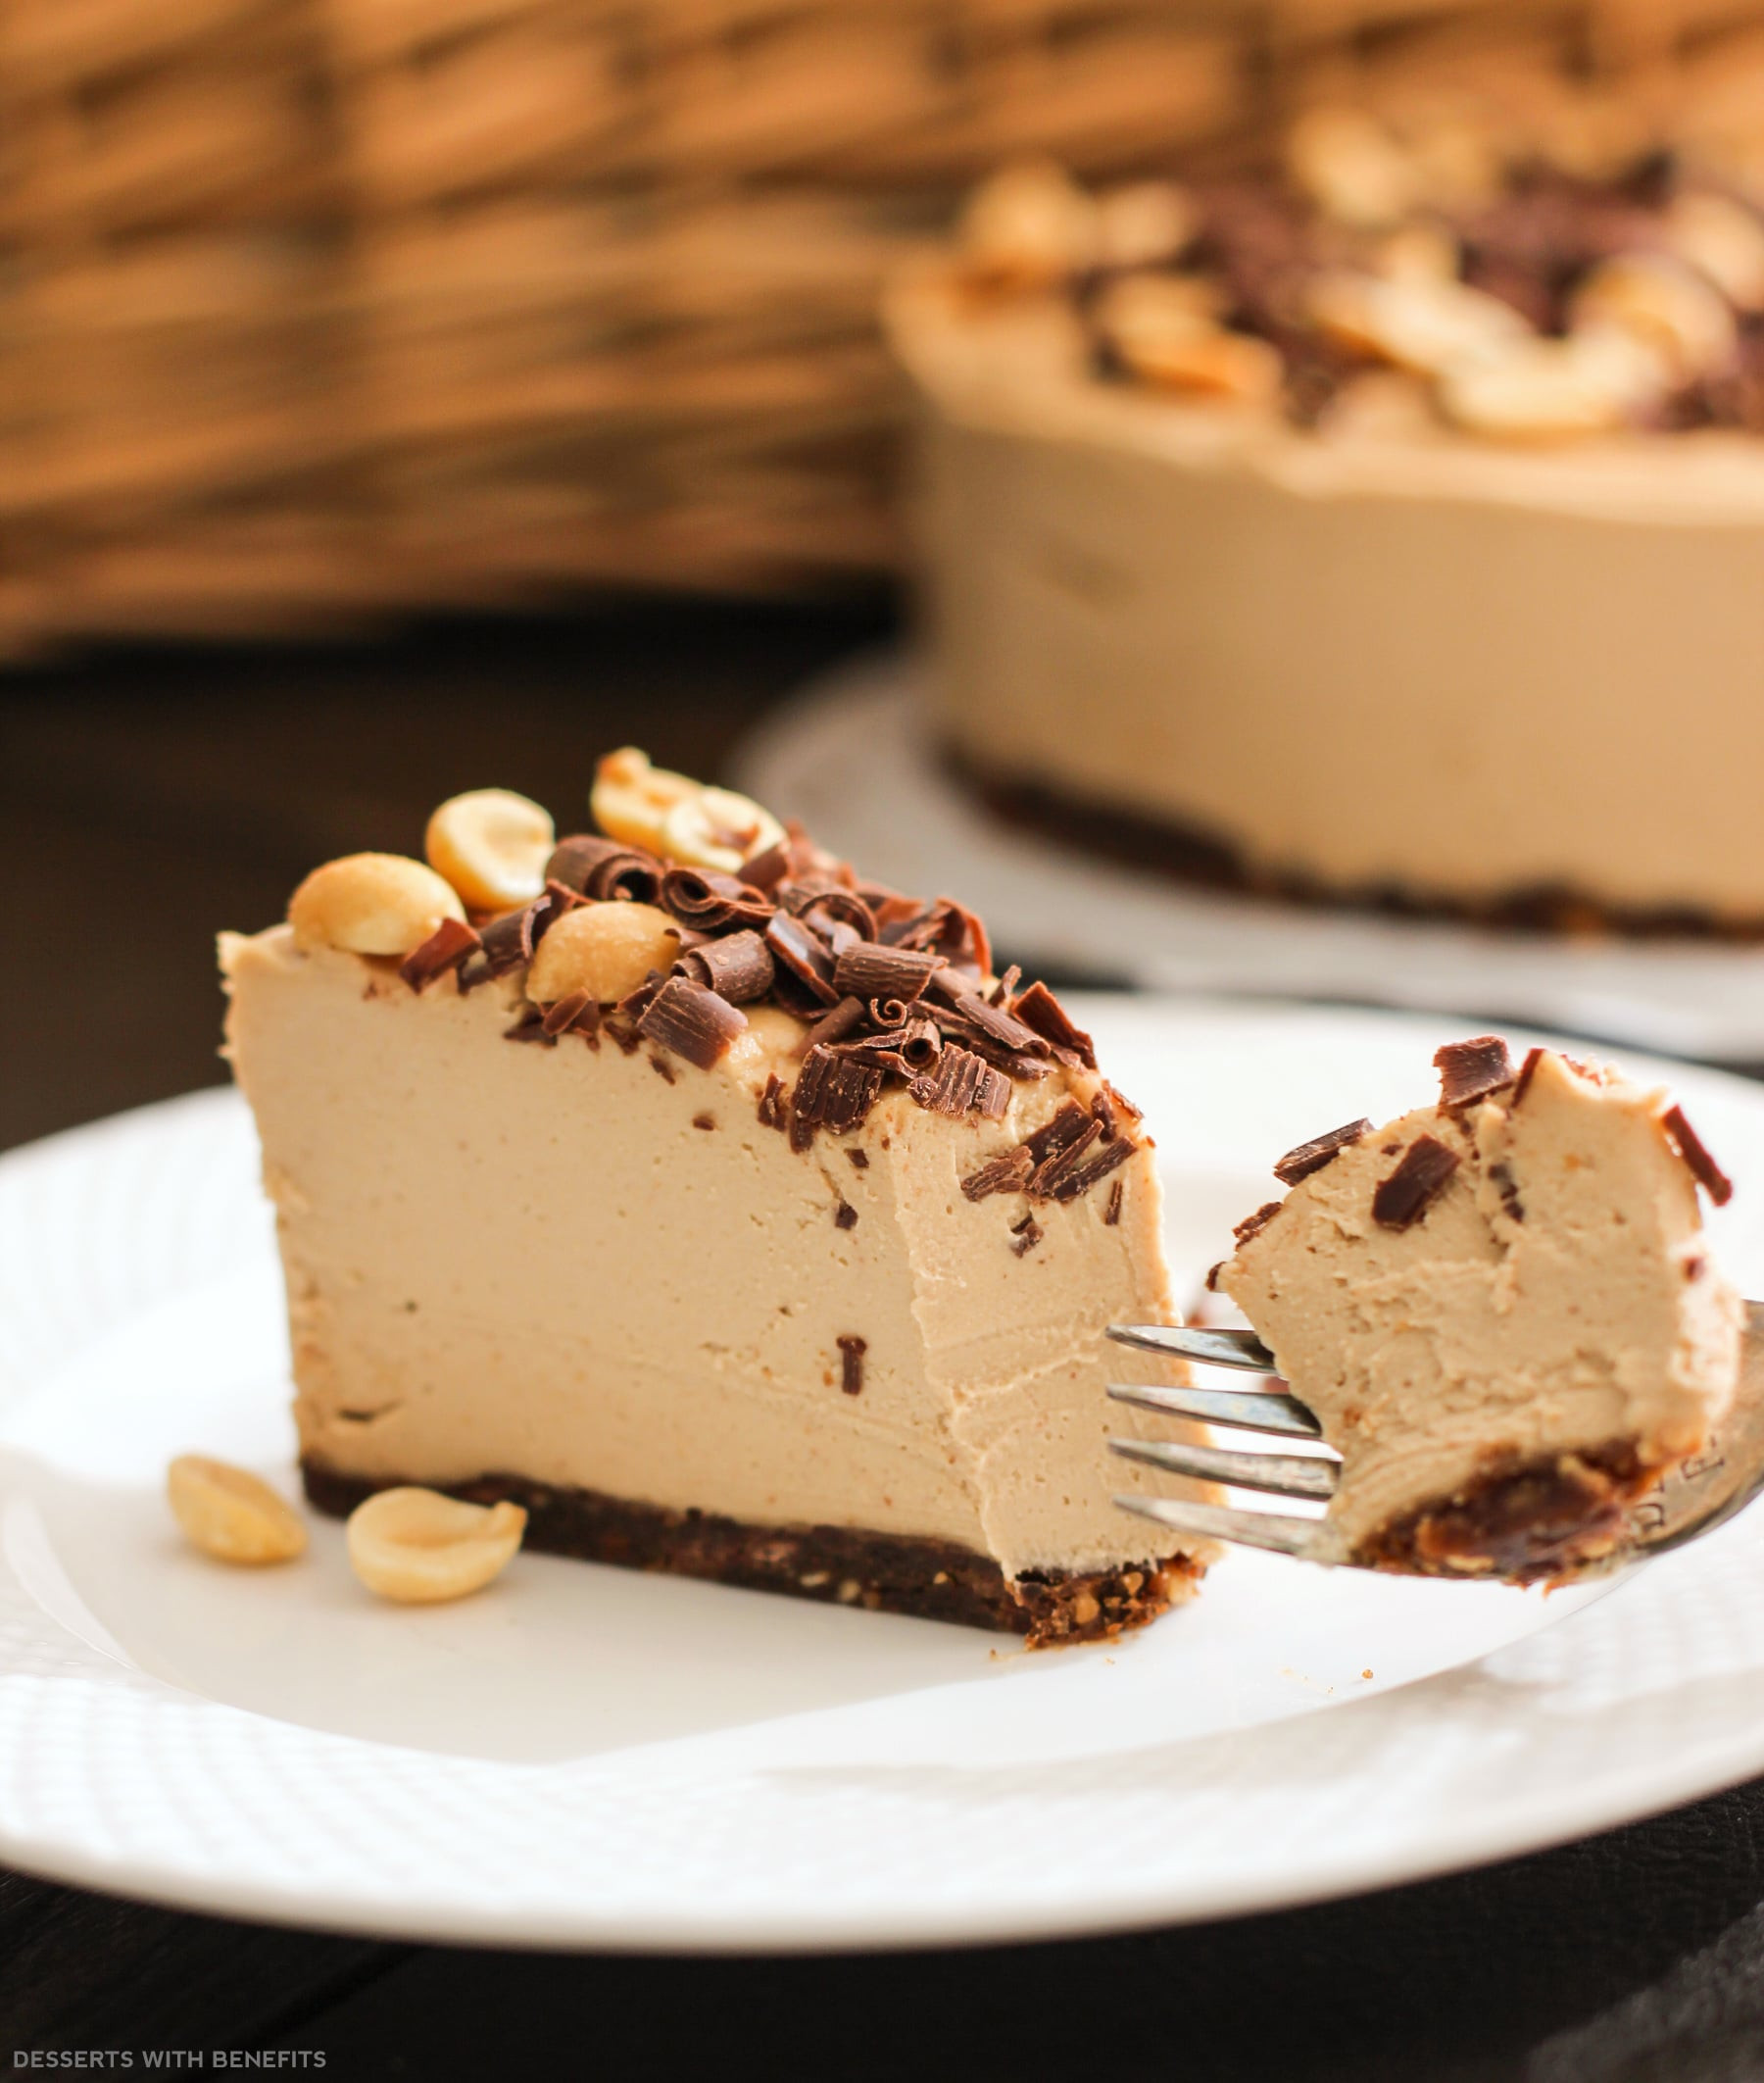 Healthy No Sugar Desserts the Best Desserts with Benefits Healthy Chocolate Peanut butter Raw